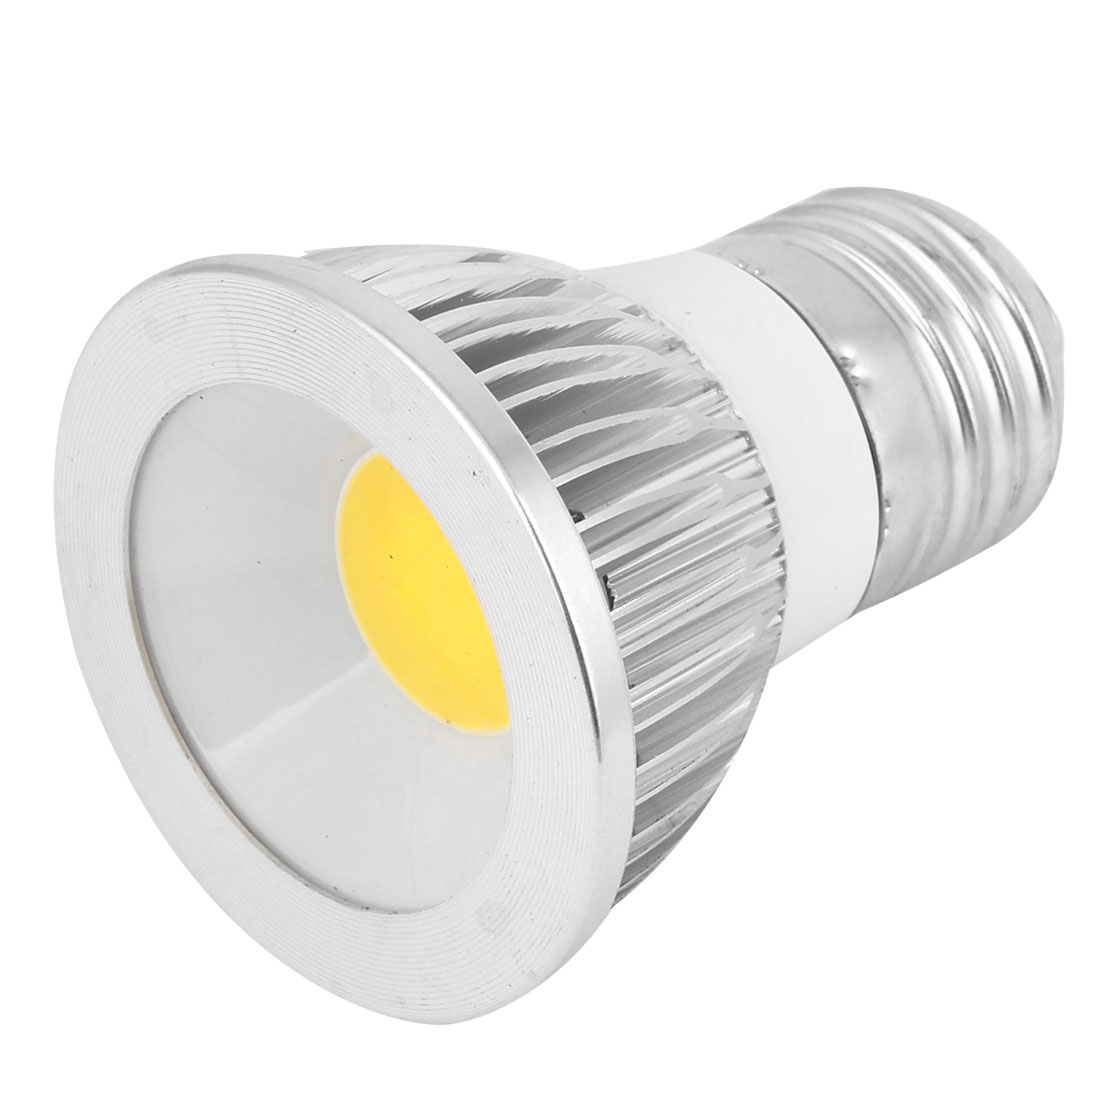 AC 85-265V 6W 360-390LM E27 Warm White Light COB LED Downlight Spotlight